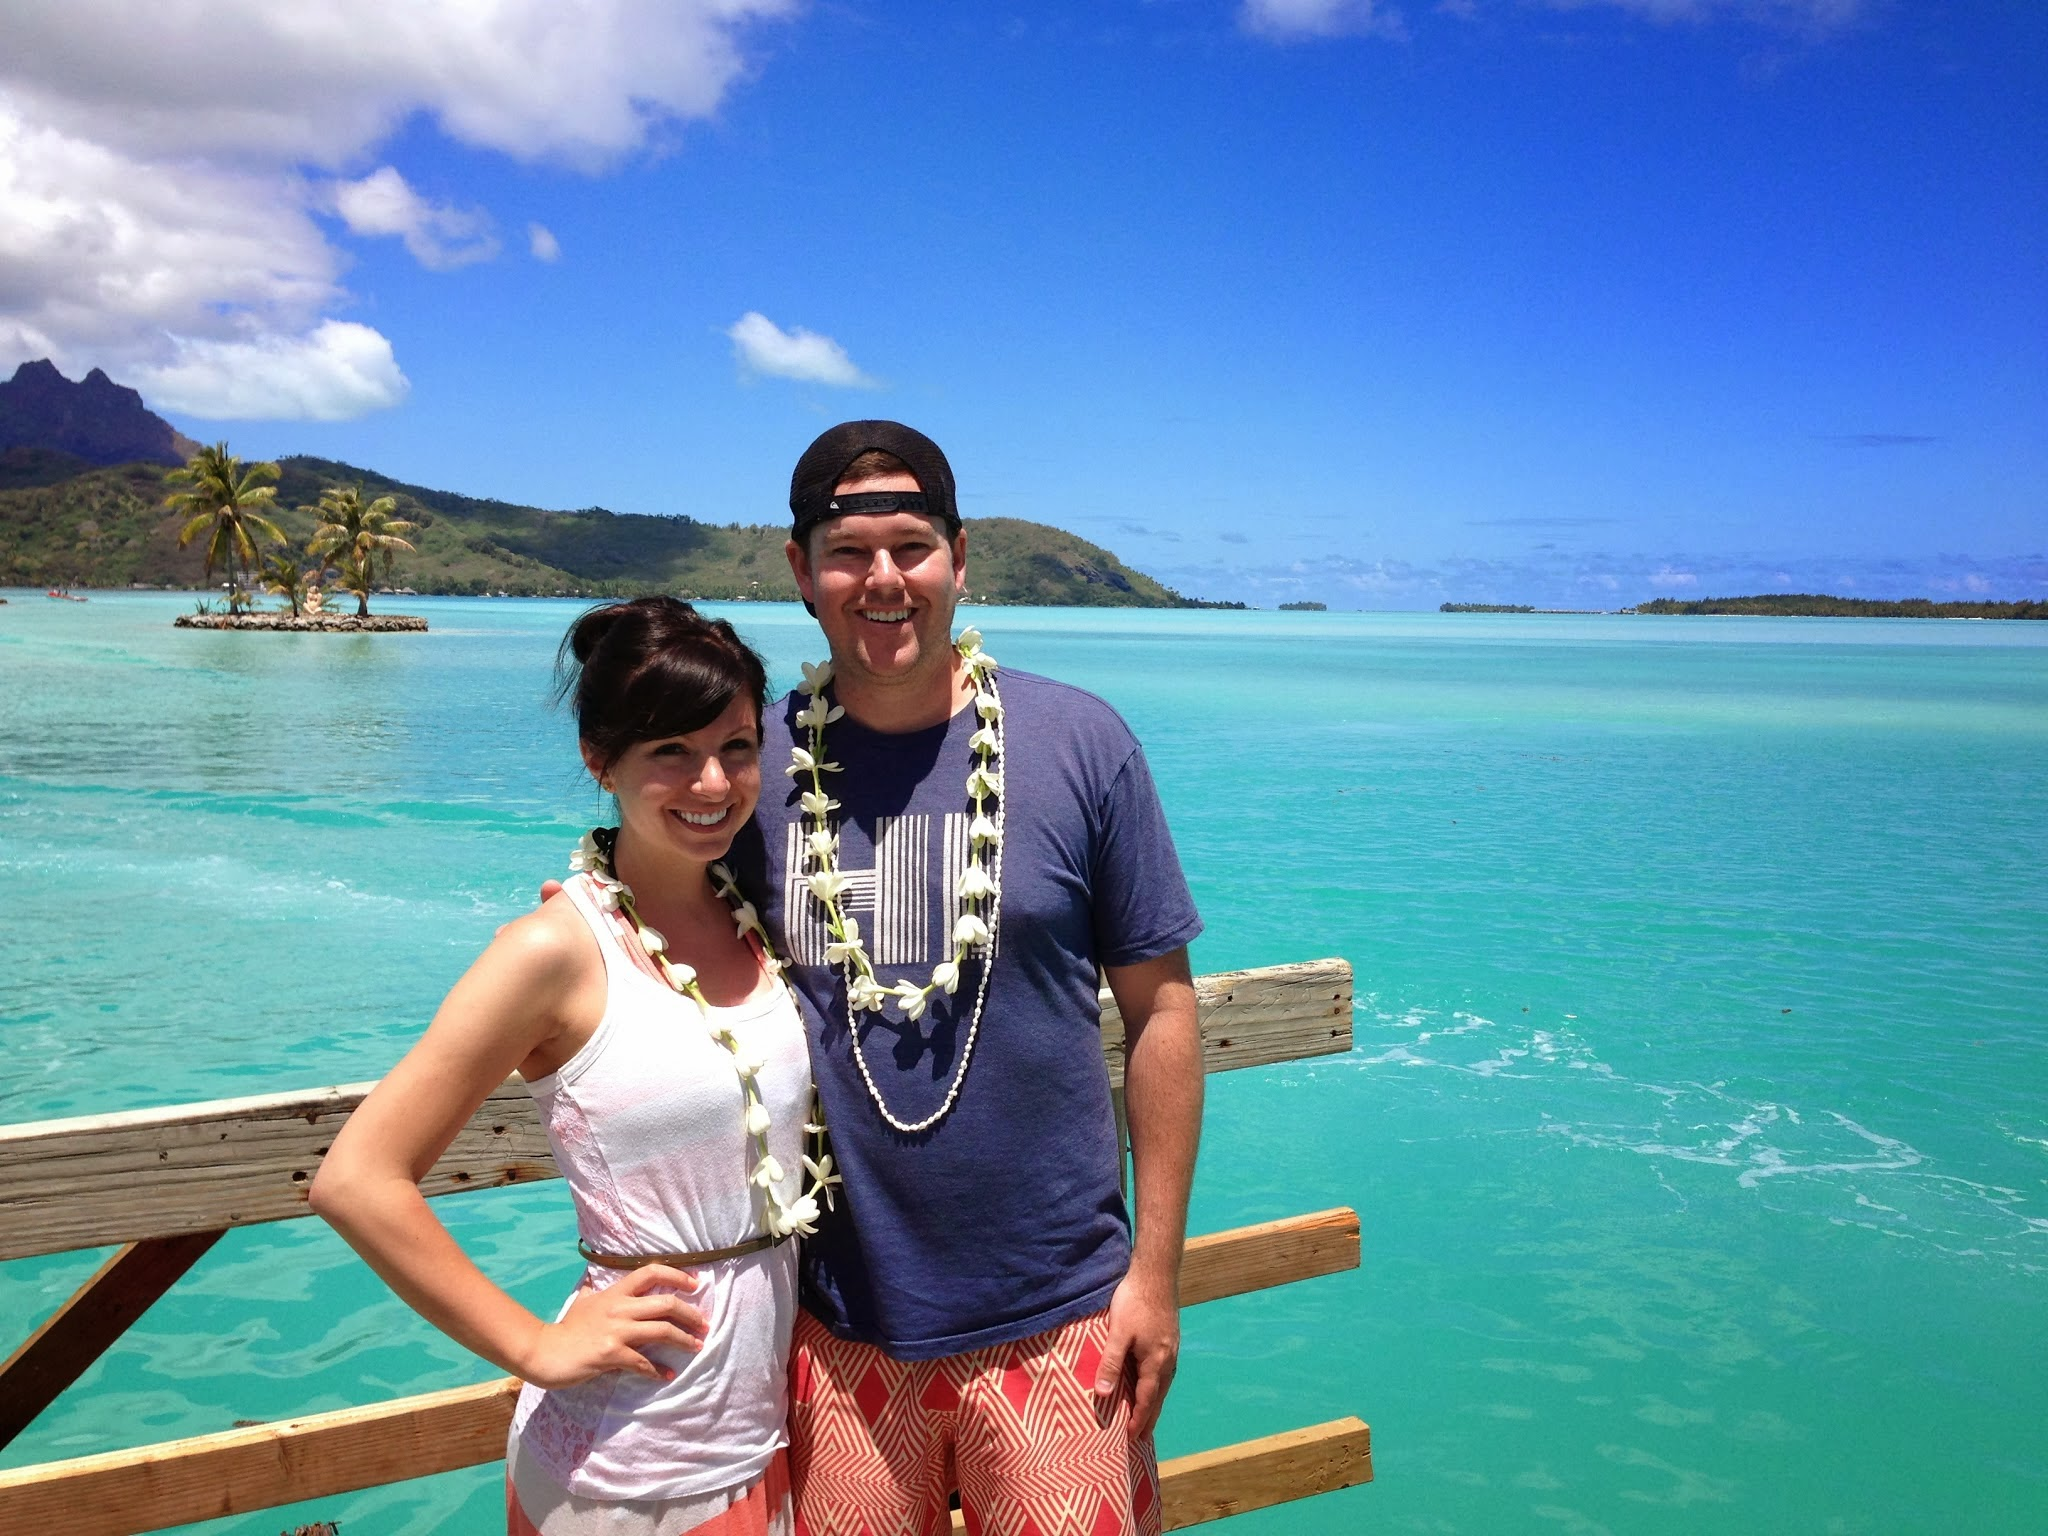 Waiting for our water taxi at the Bora Bora airport.